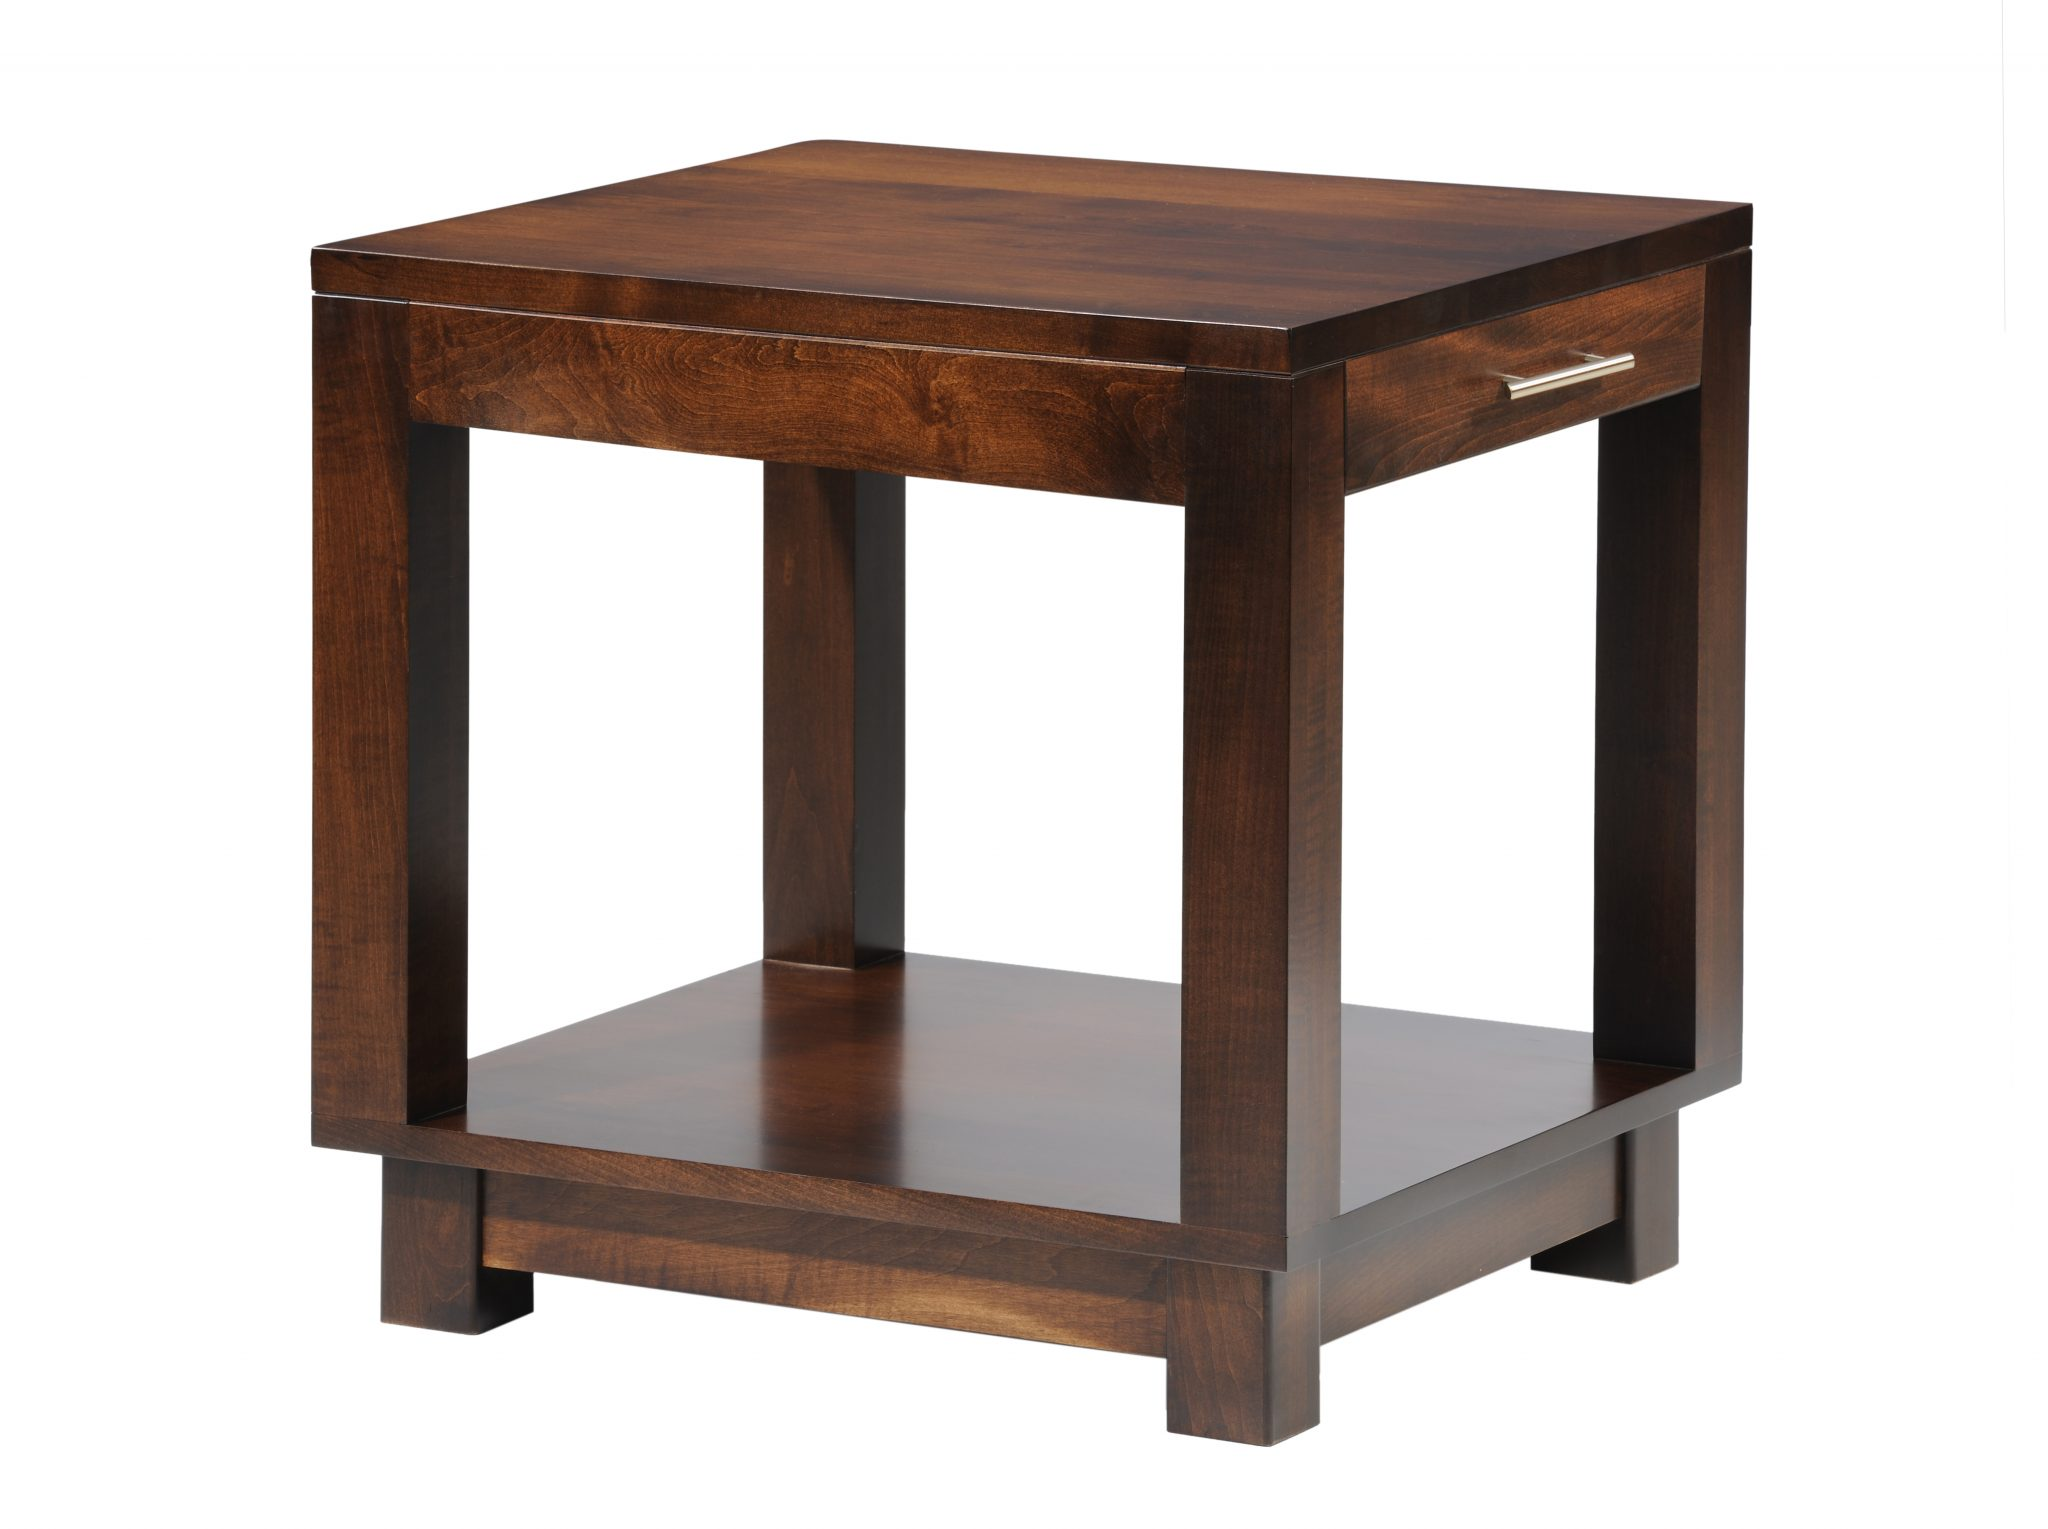 Urban Collection Room Concepts : 536 Urban End Table w Drw from roomconcepts.com size 2048 x 1529 jpeg 169kB